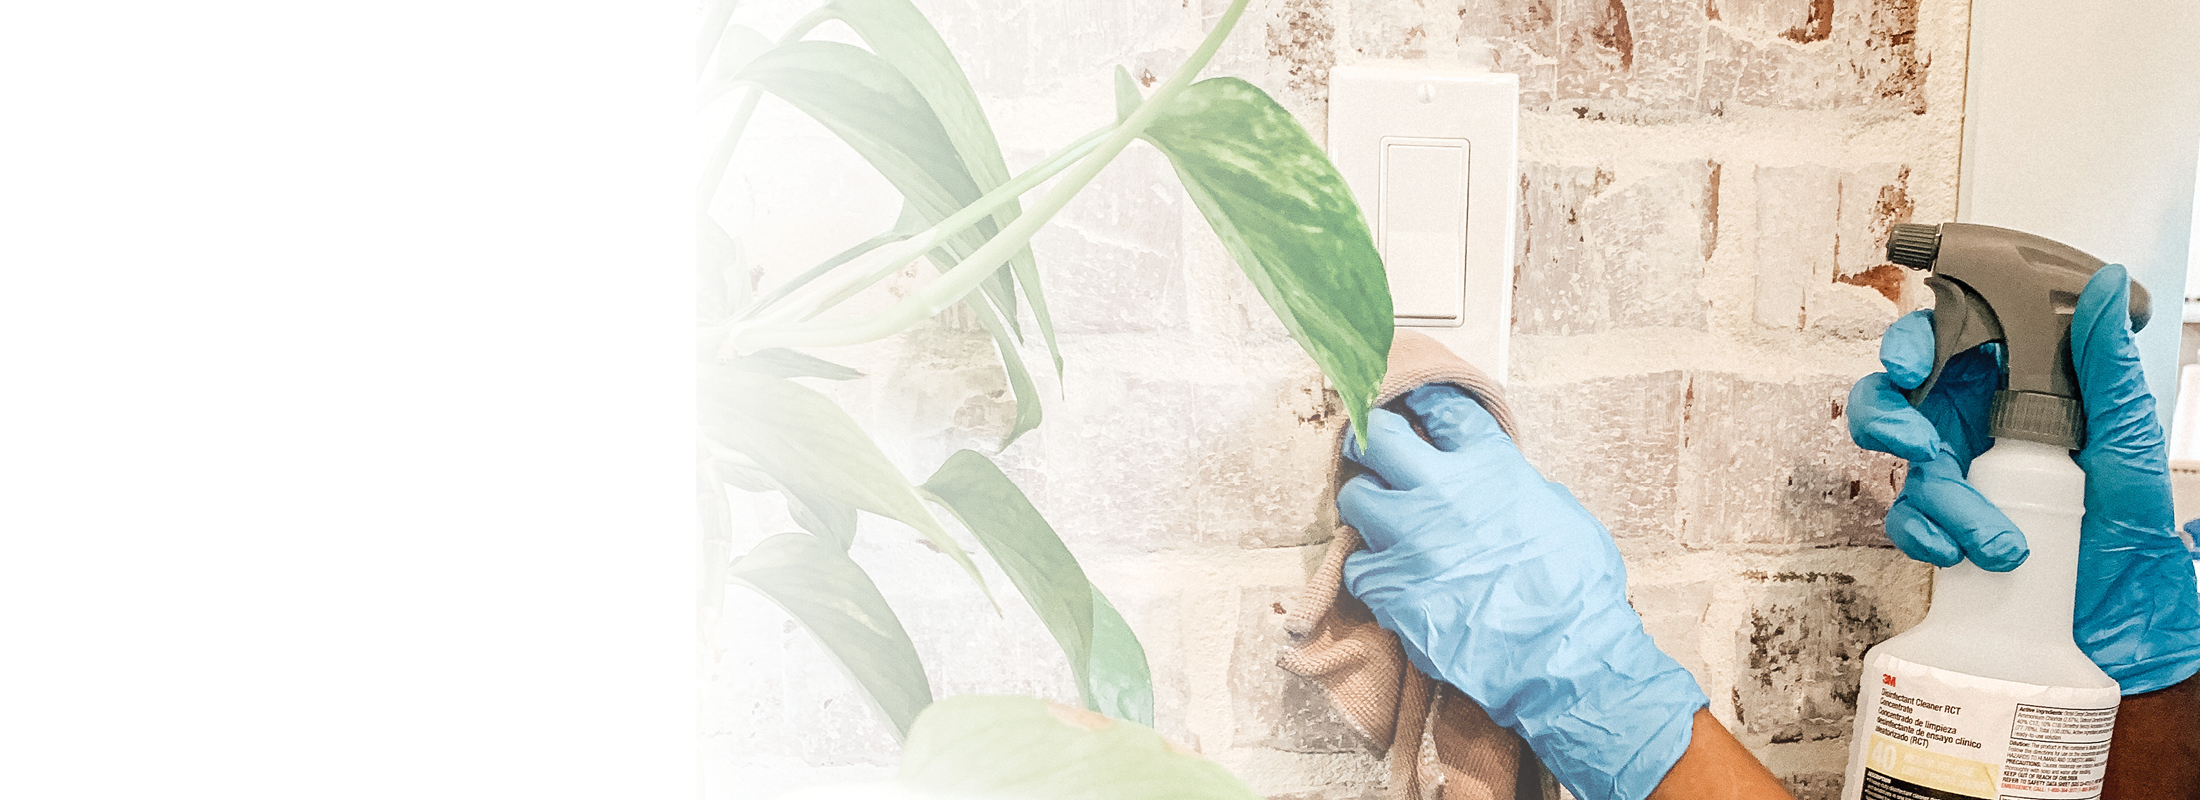 Our New Enhanced Disinfection Services are designed to help fight against harmful germs.